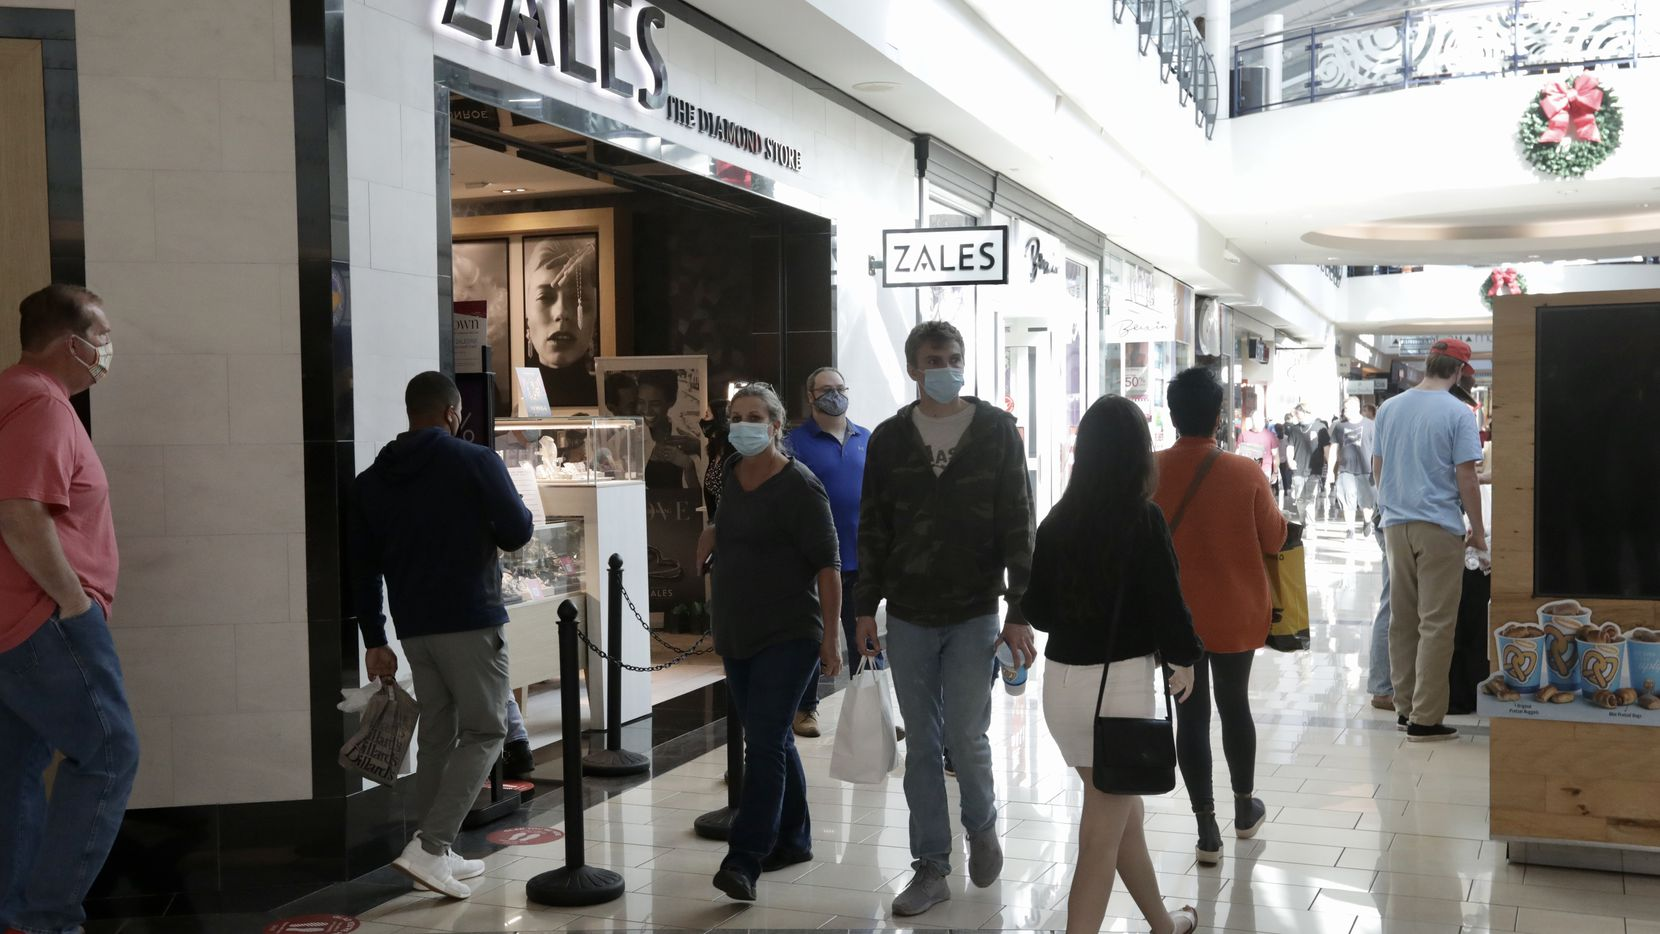 Customers waited to get into Zales at Stonebriar Centre in Frisco two days before Christmas.